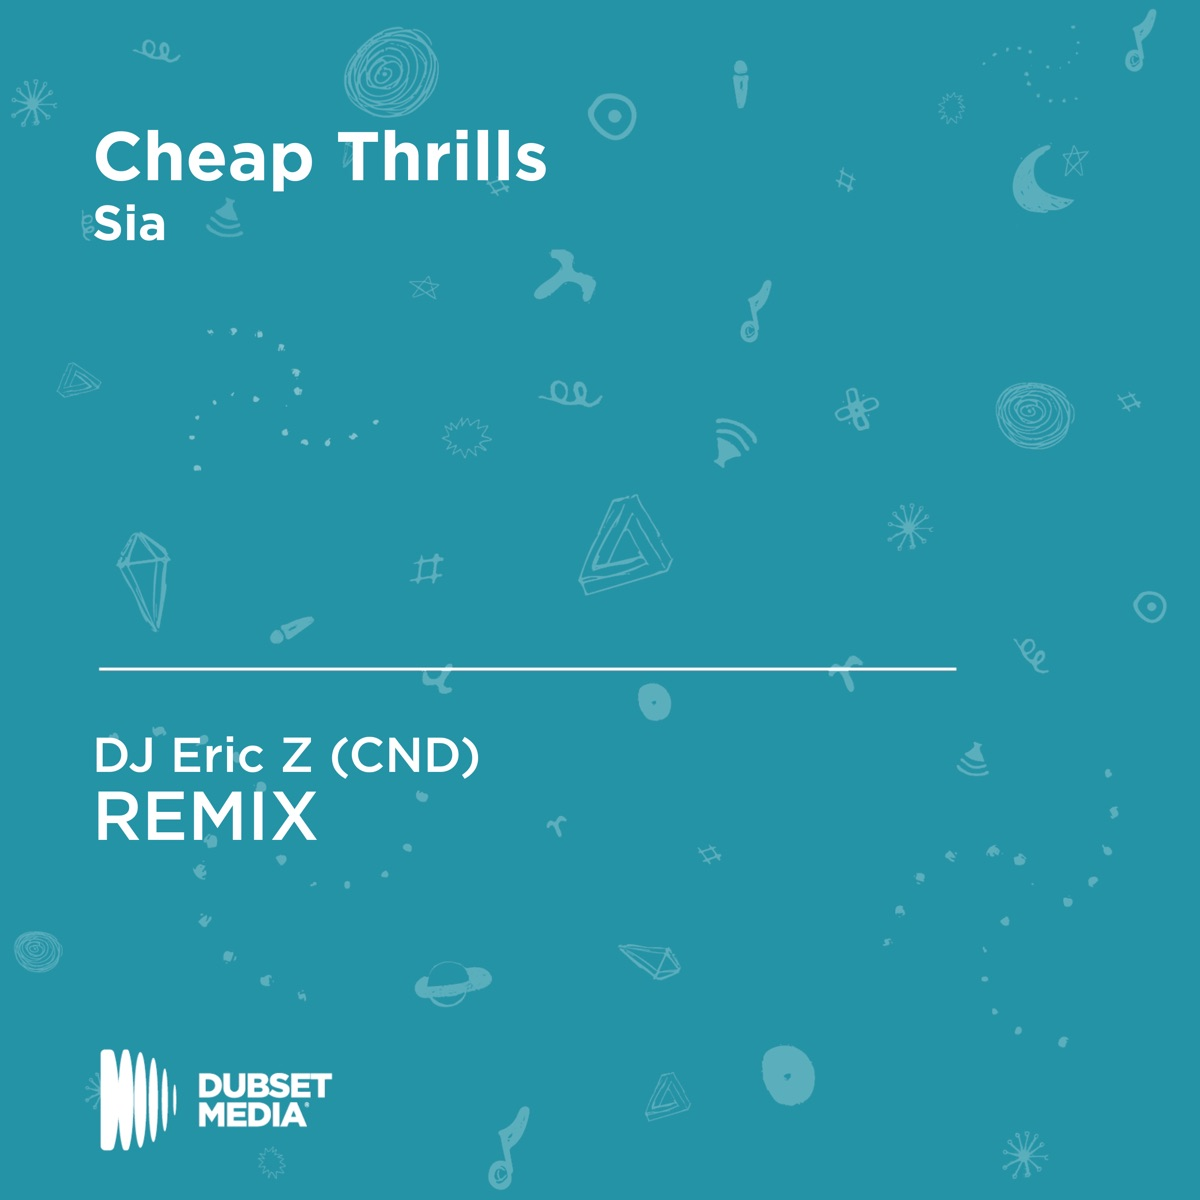 Cheap Thrills Album Cover by DJ Eric Z (CND)